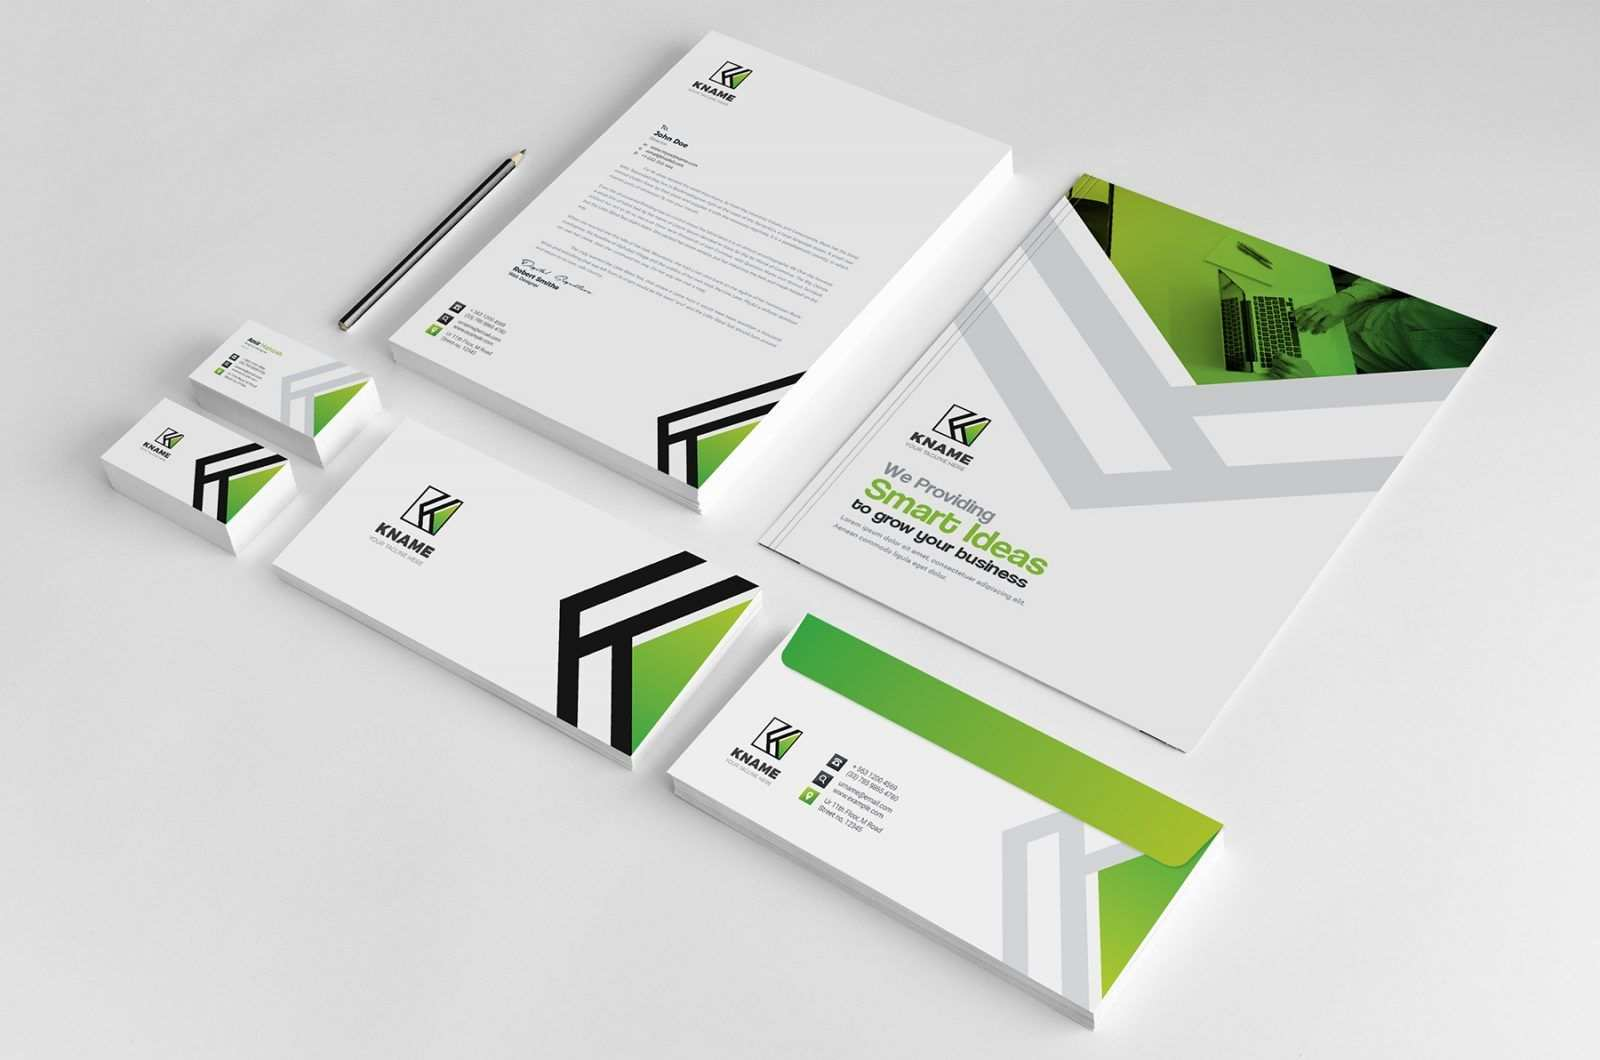 Name Corporate Identity Pack Design Template 002116 Corporate Identity Design Template Corporate Identity Design